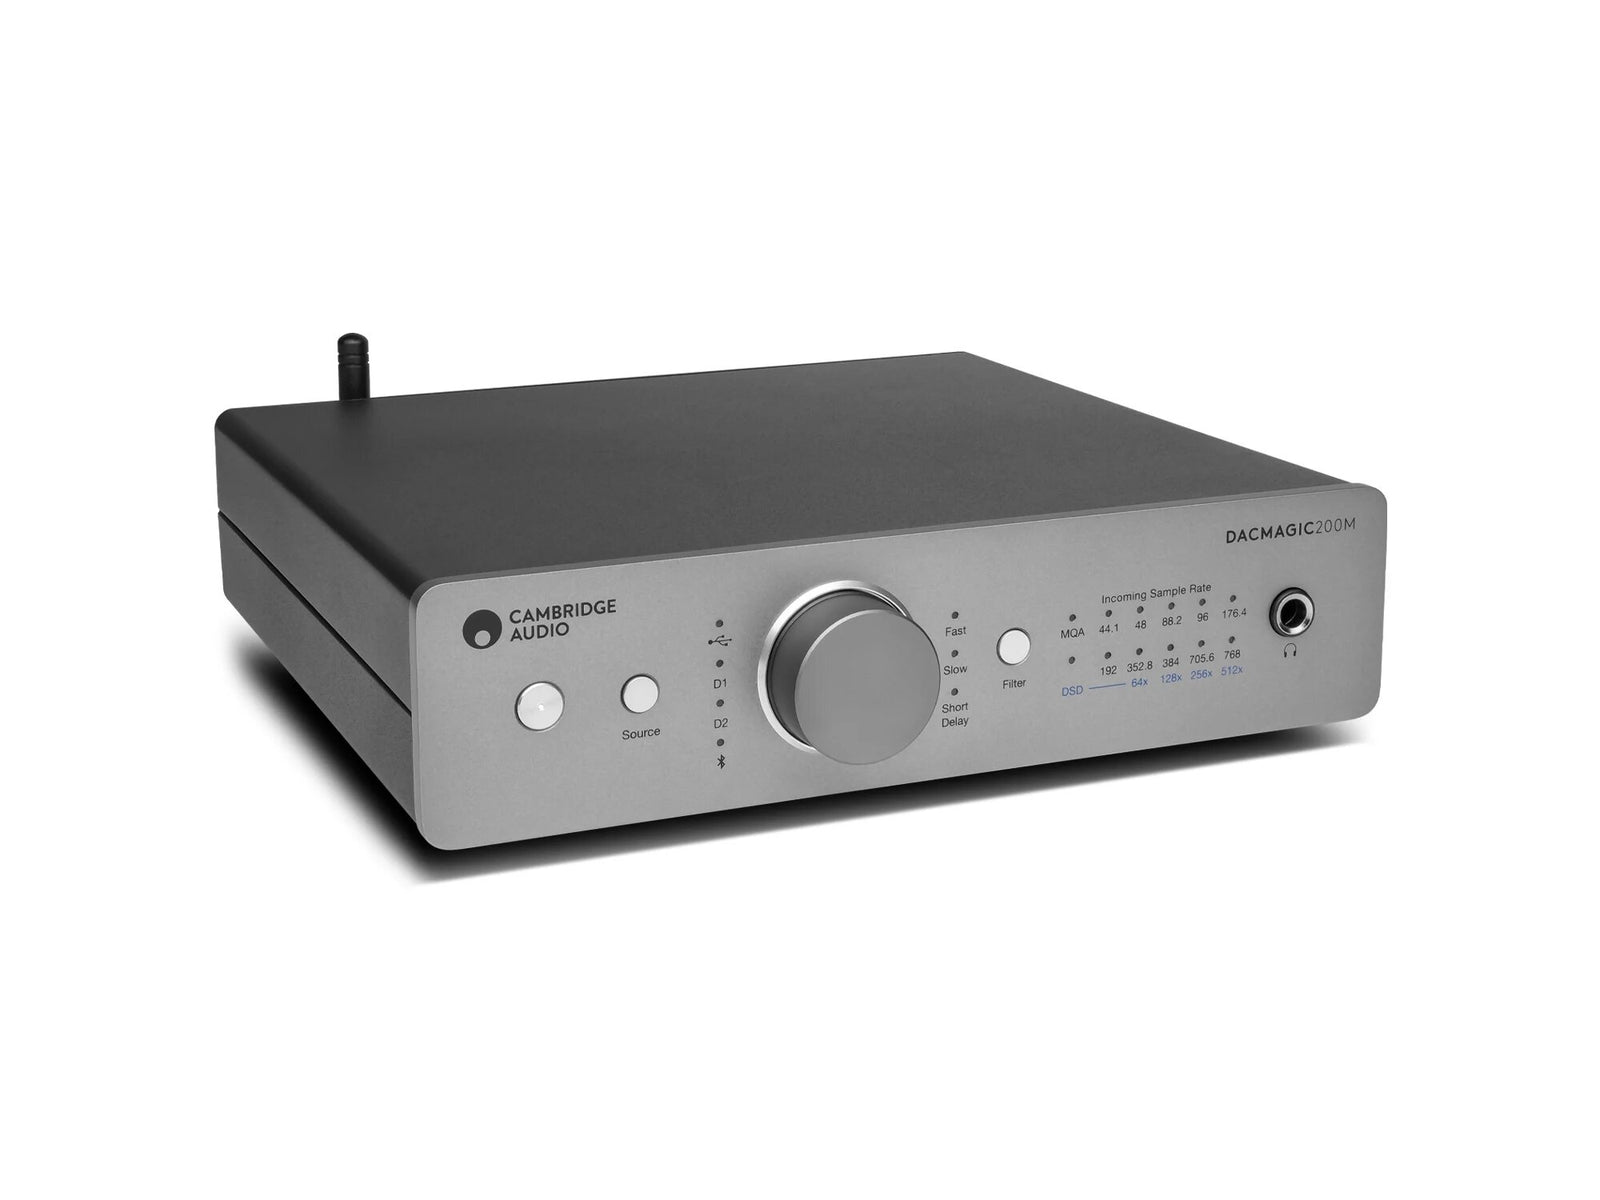 CAMBRIDGE DACMAGIC 200M DIGITAL TO ANALOGUE CONVERTER